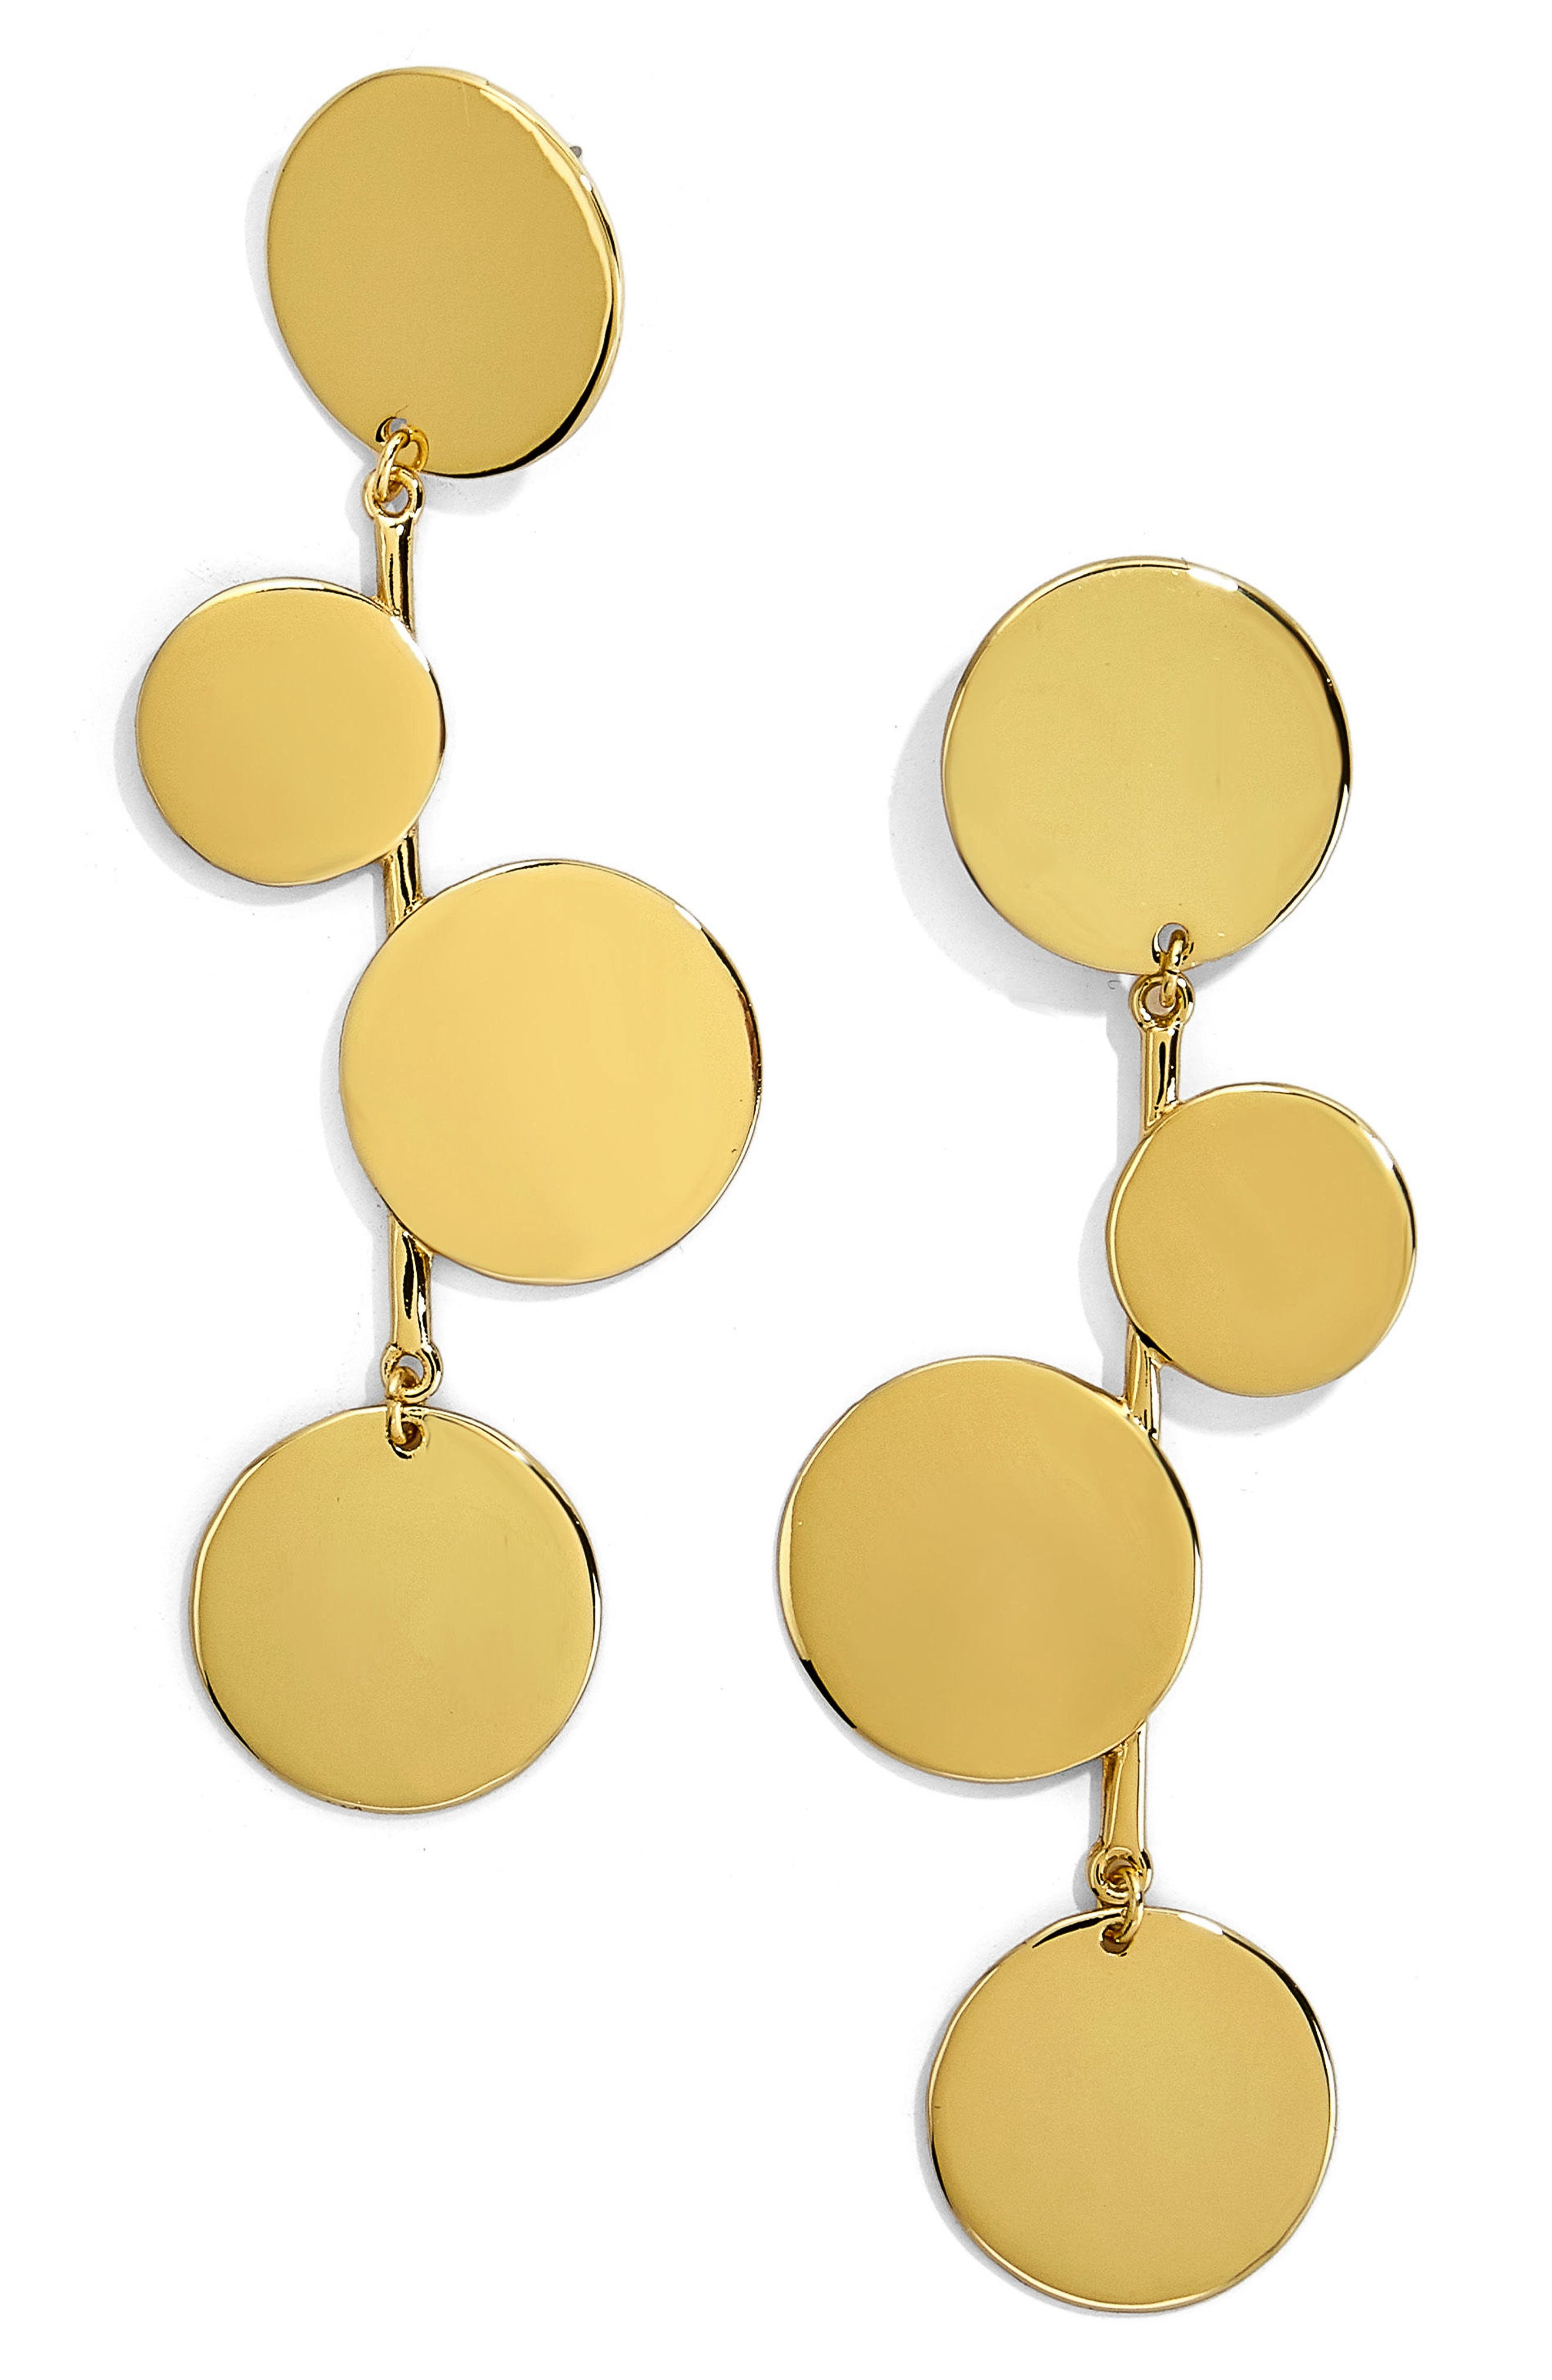 Rona Alternating Disc Statement Earrings,                             Main thumbnail 1, color,                             Gold